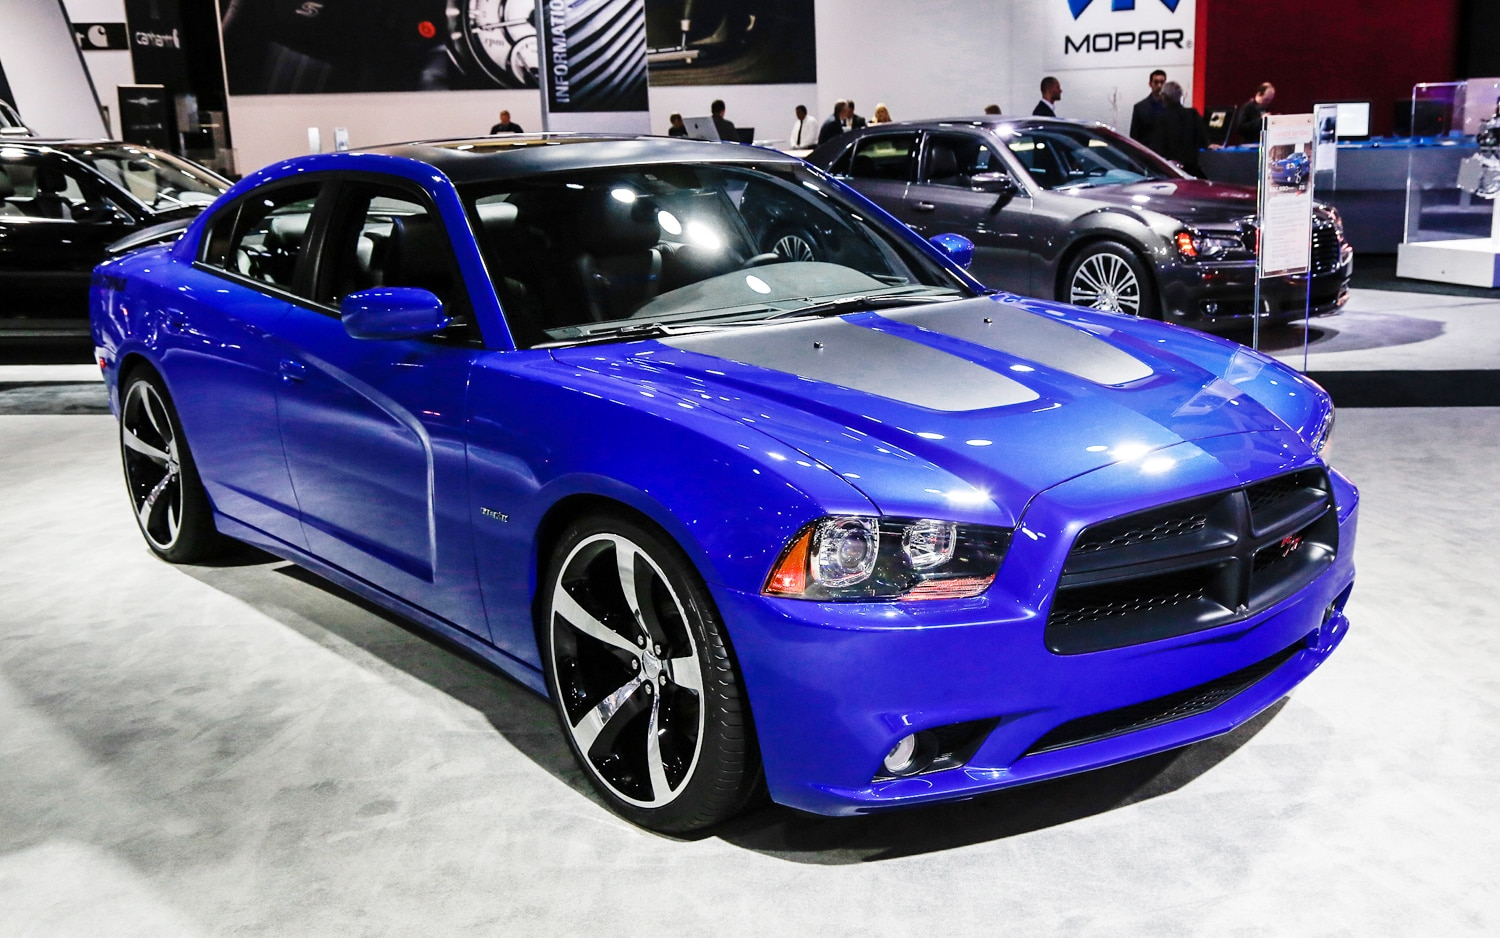 2013 dodge charger r t dressed up in new daytona package. Black Bedroom Furniture Sets. Home Design Ideas